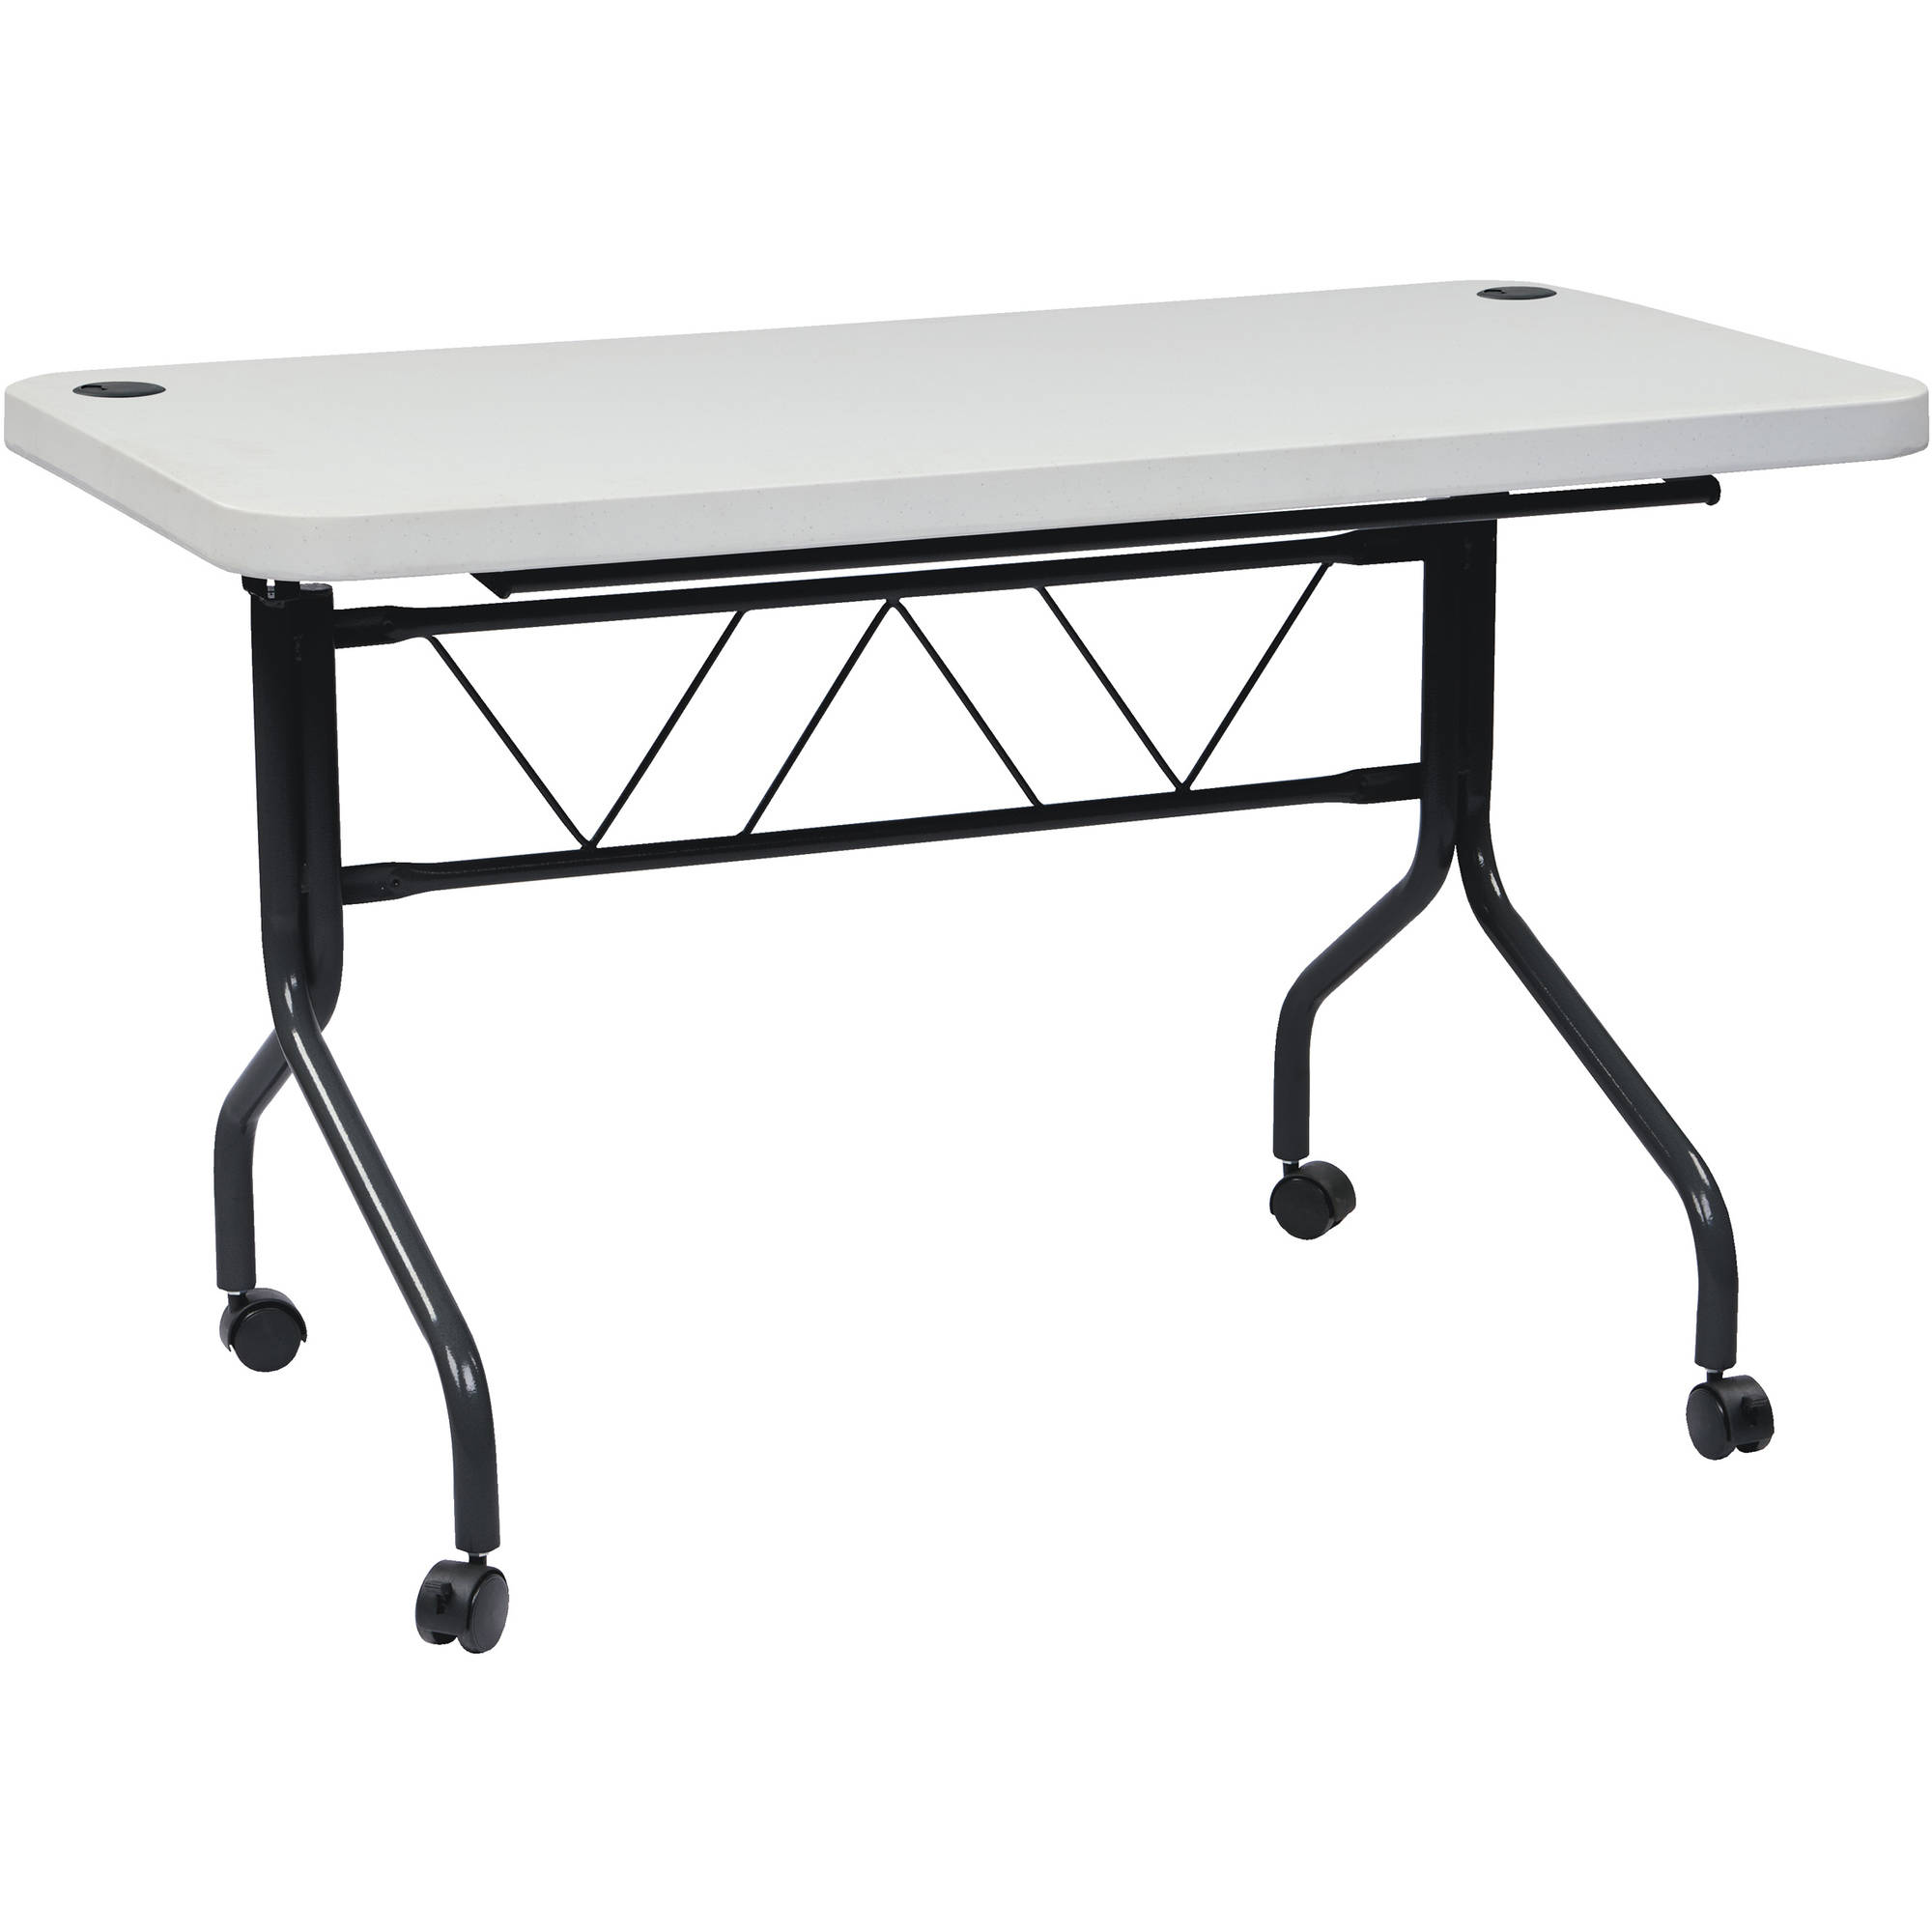 Work Smart 4' Resin Multi-Purpose Flip Table with Locking Casters, Grey